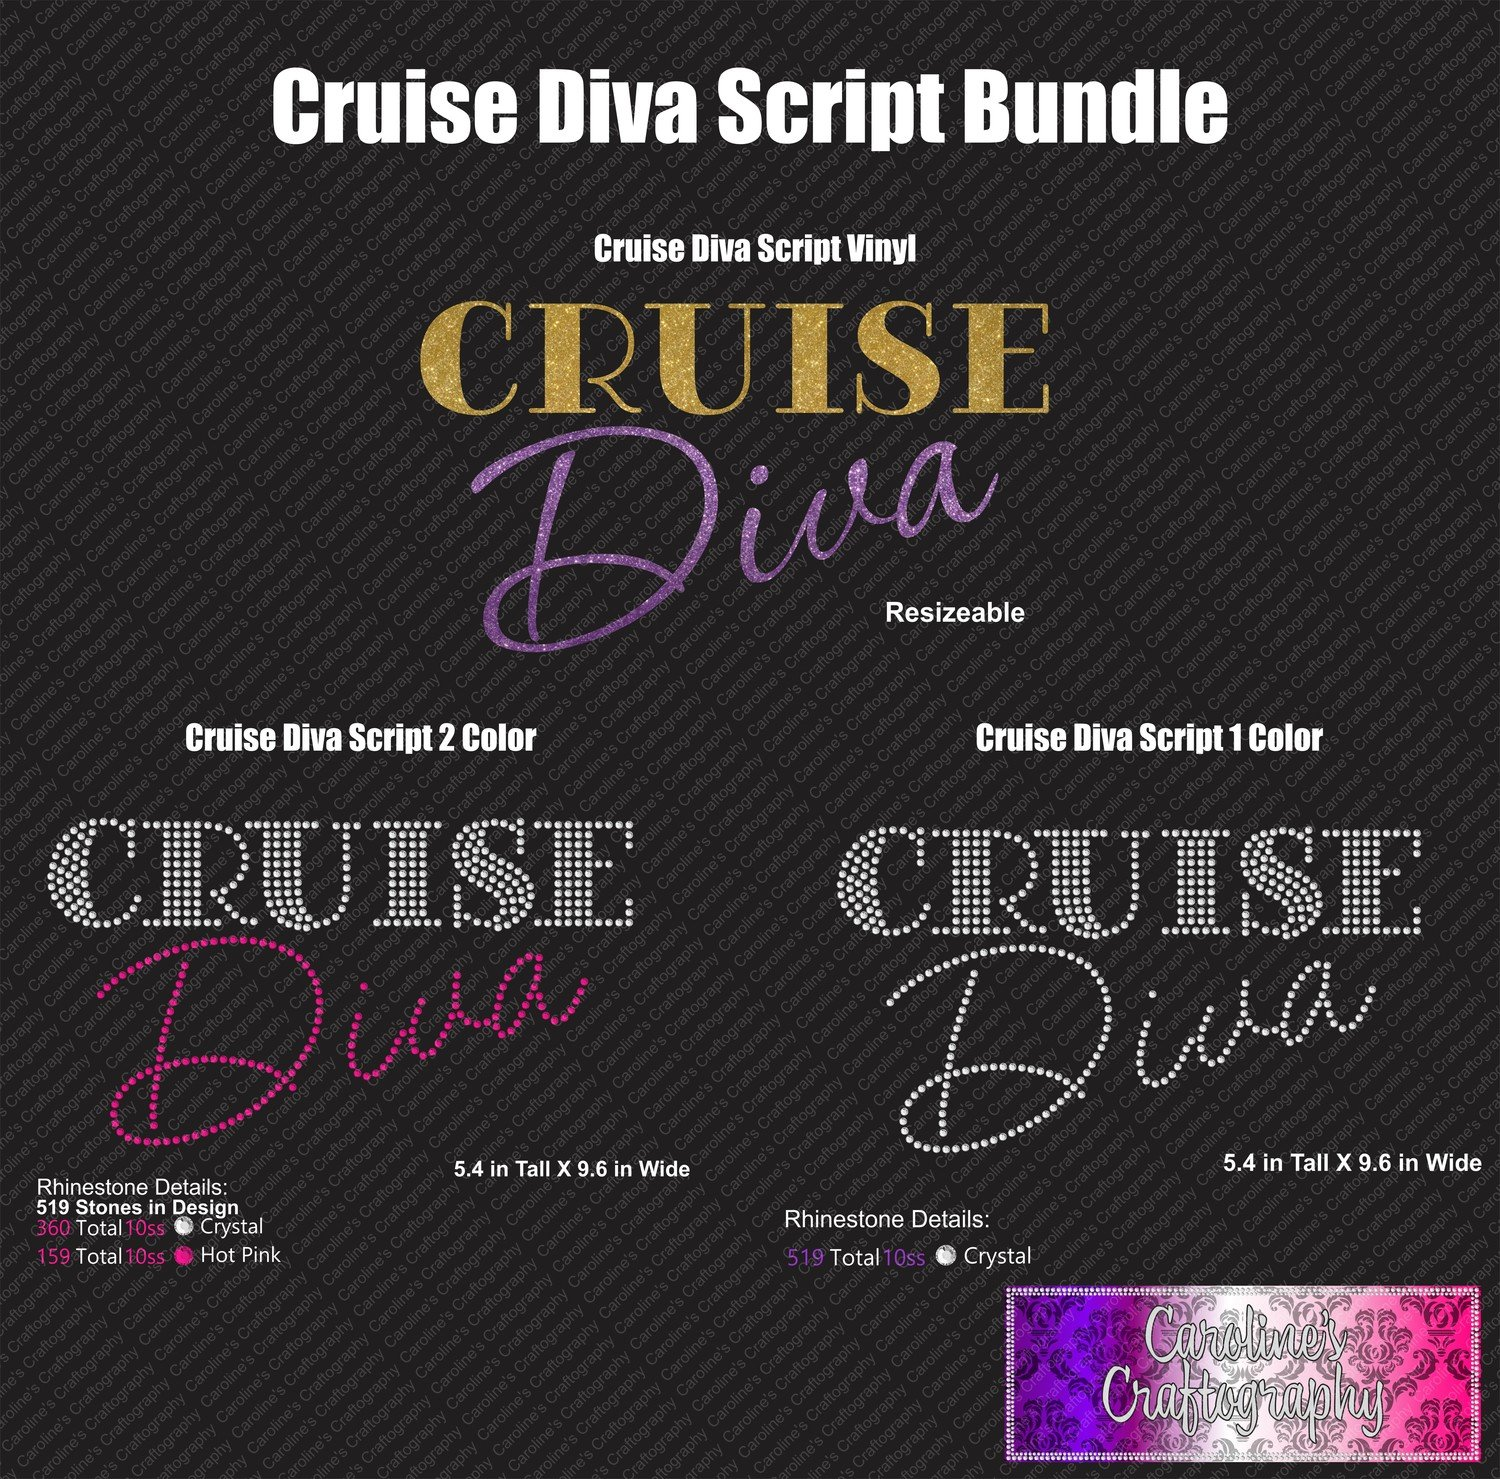 Cruise Diva Script Bundle